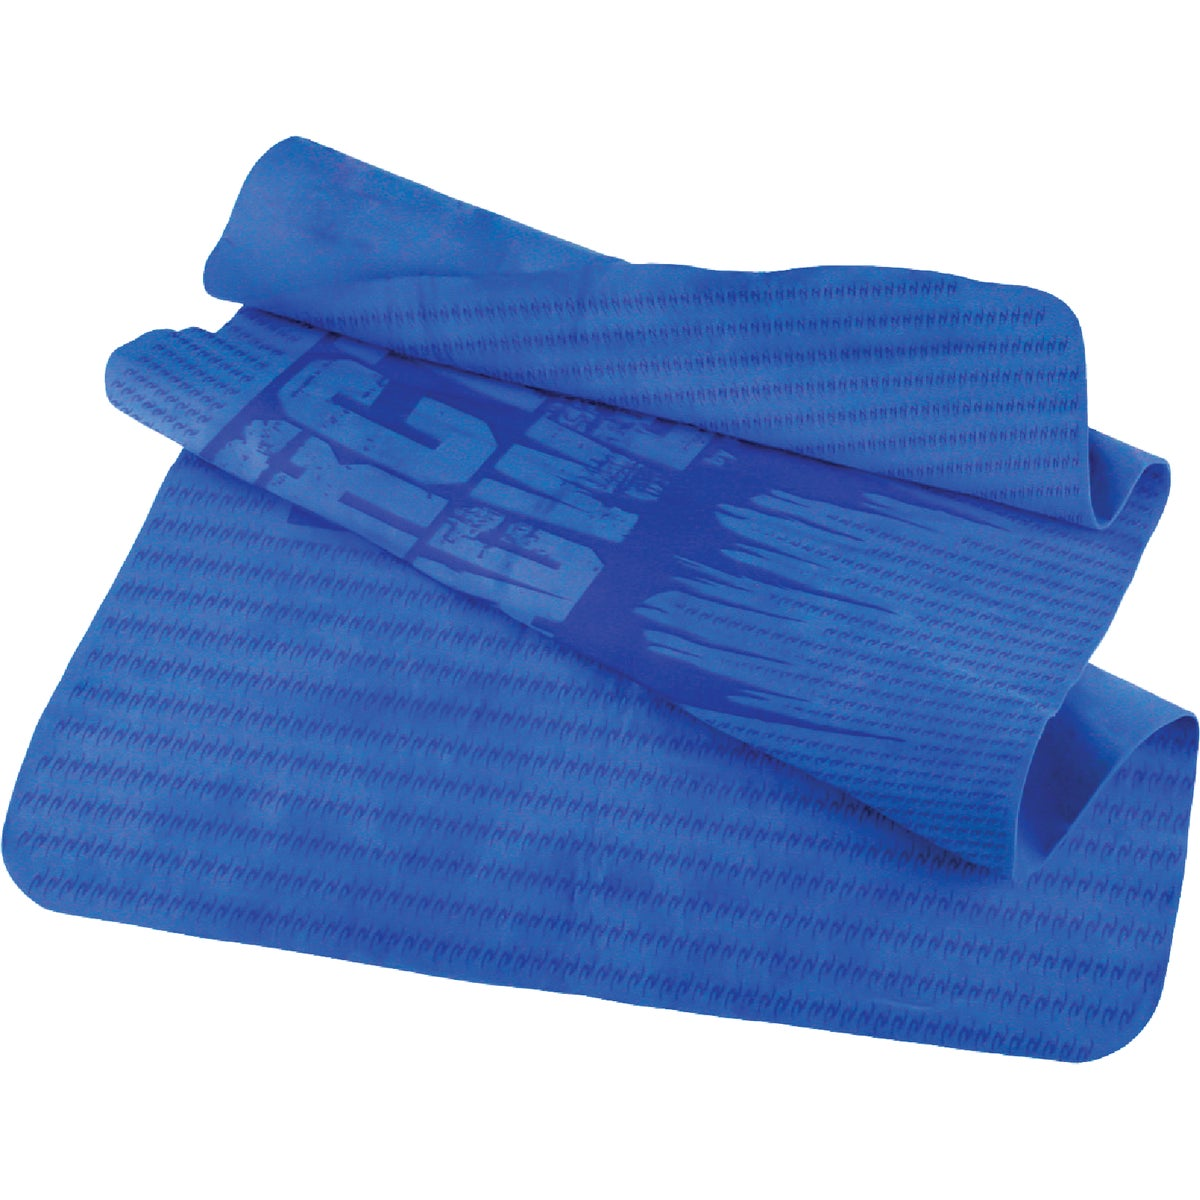 Ergodyne CHILL-ITS COOLING TOWEL 12420